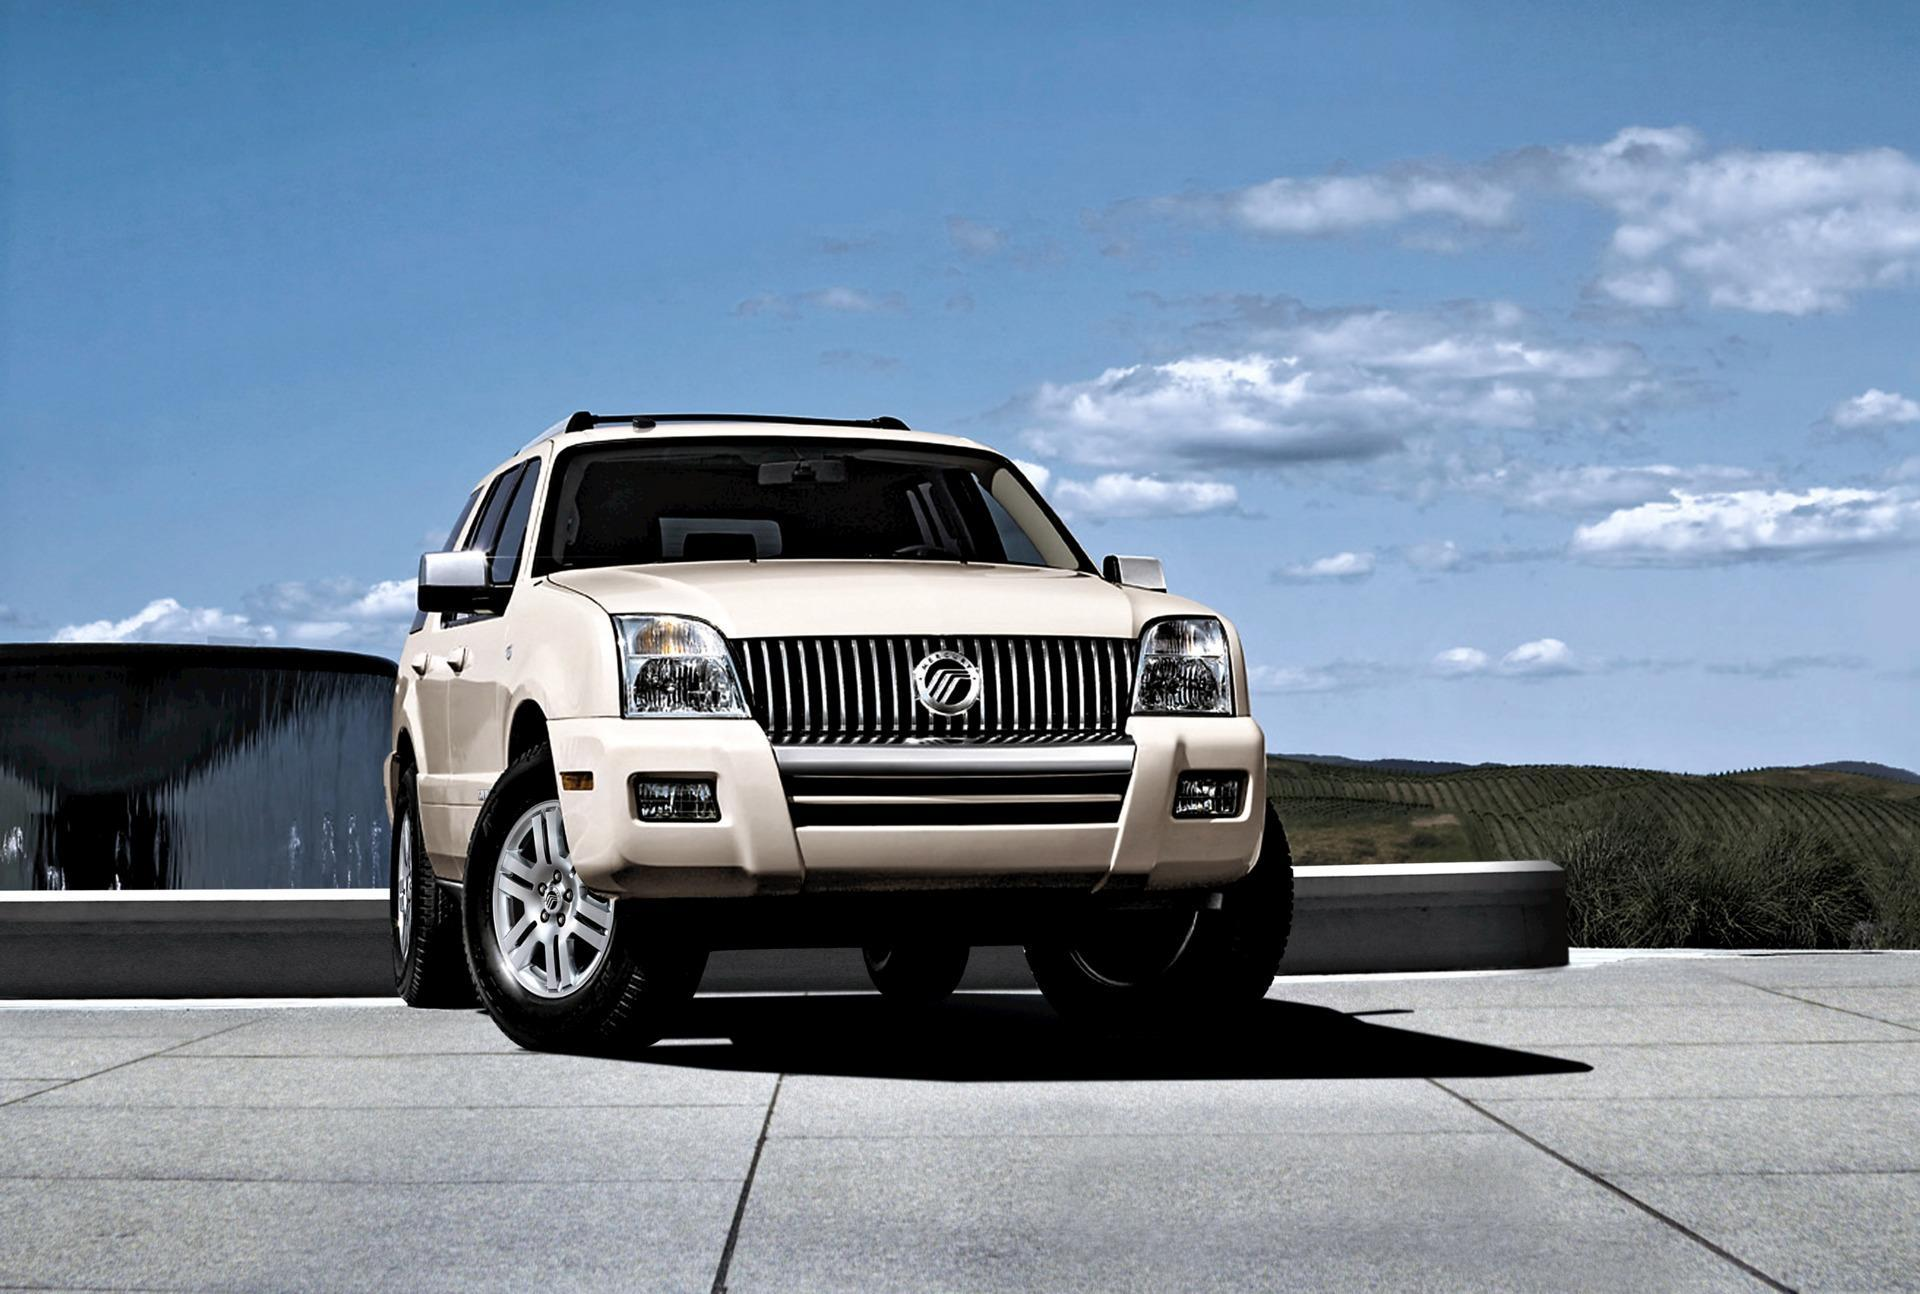 Mercury Mountaineer Image